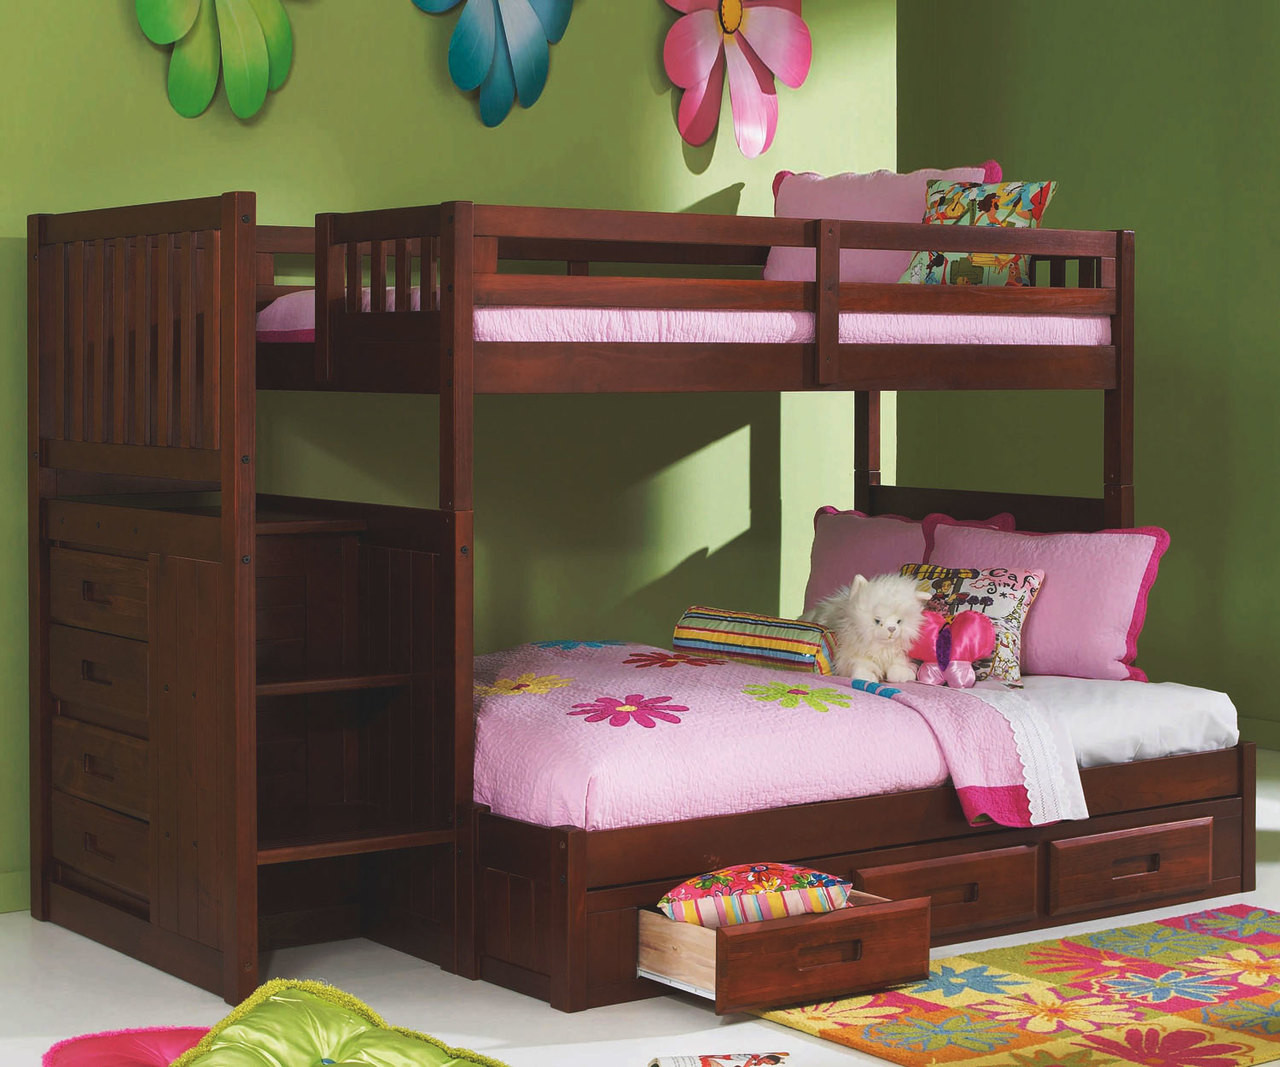 Merlot Finish Mission Stairstepper Bunk Bed At Kids Furniture Warehouse Merlot Bunk Bed With Stairs In Orlando And Tampa With Delivery Available Bunk Beds With Stairs In Central Florida